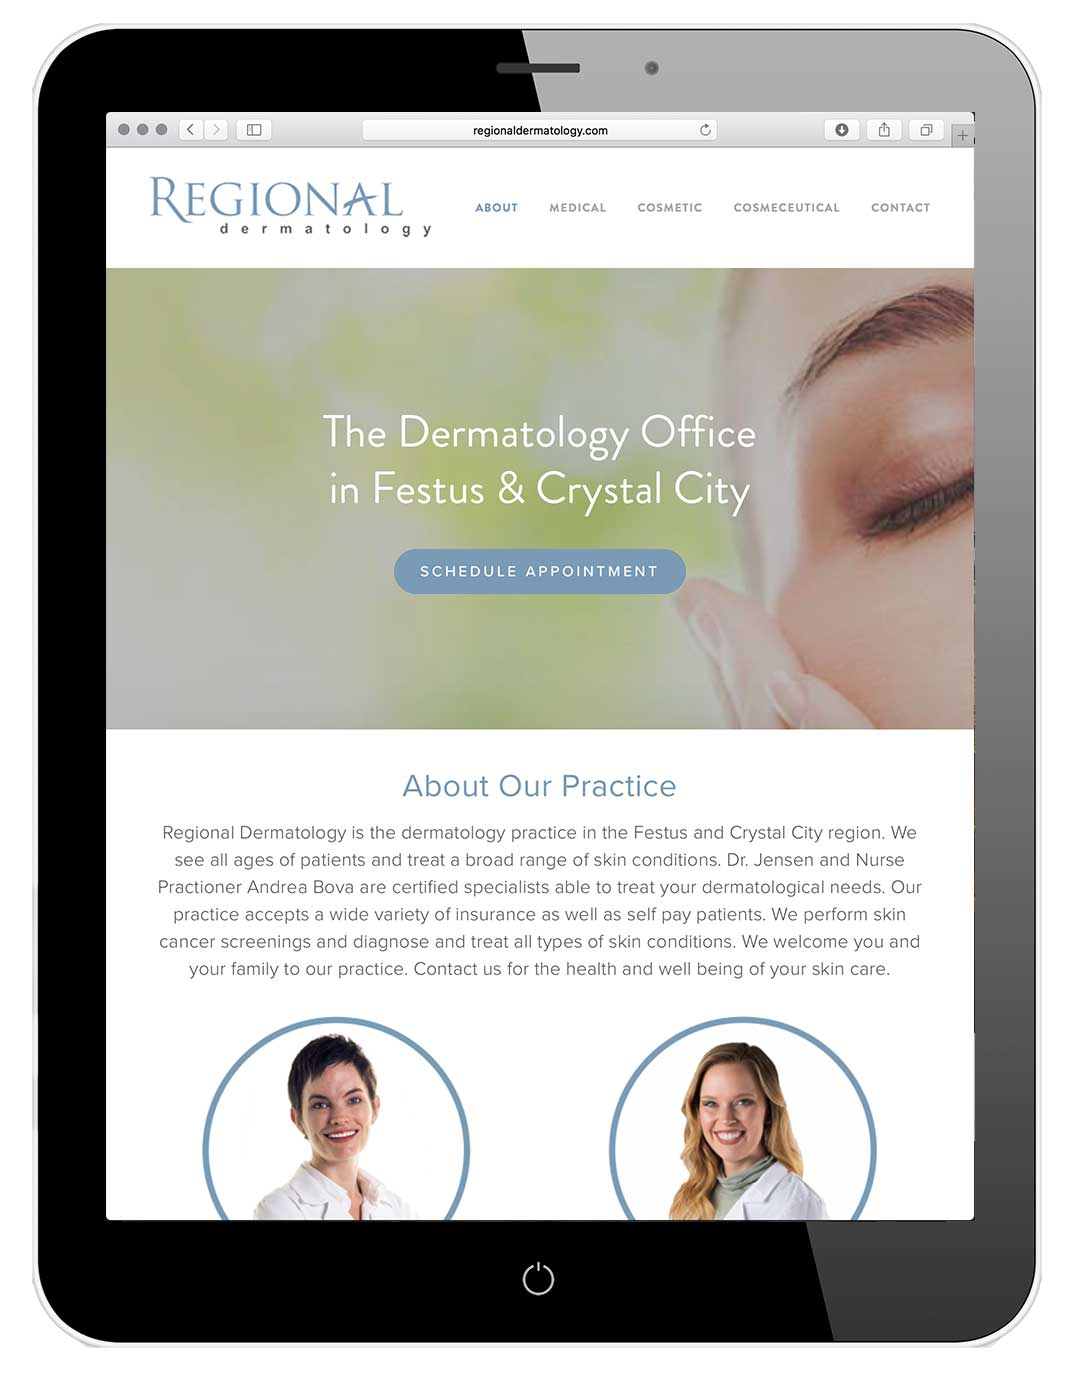 A preview of the new Regional Dermatology website, designed and developed by Cfx.